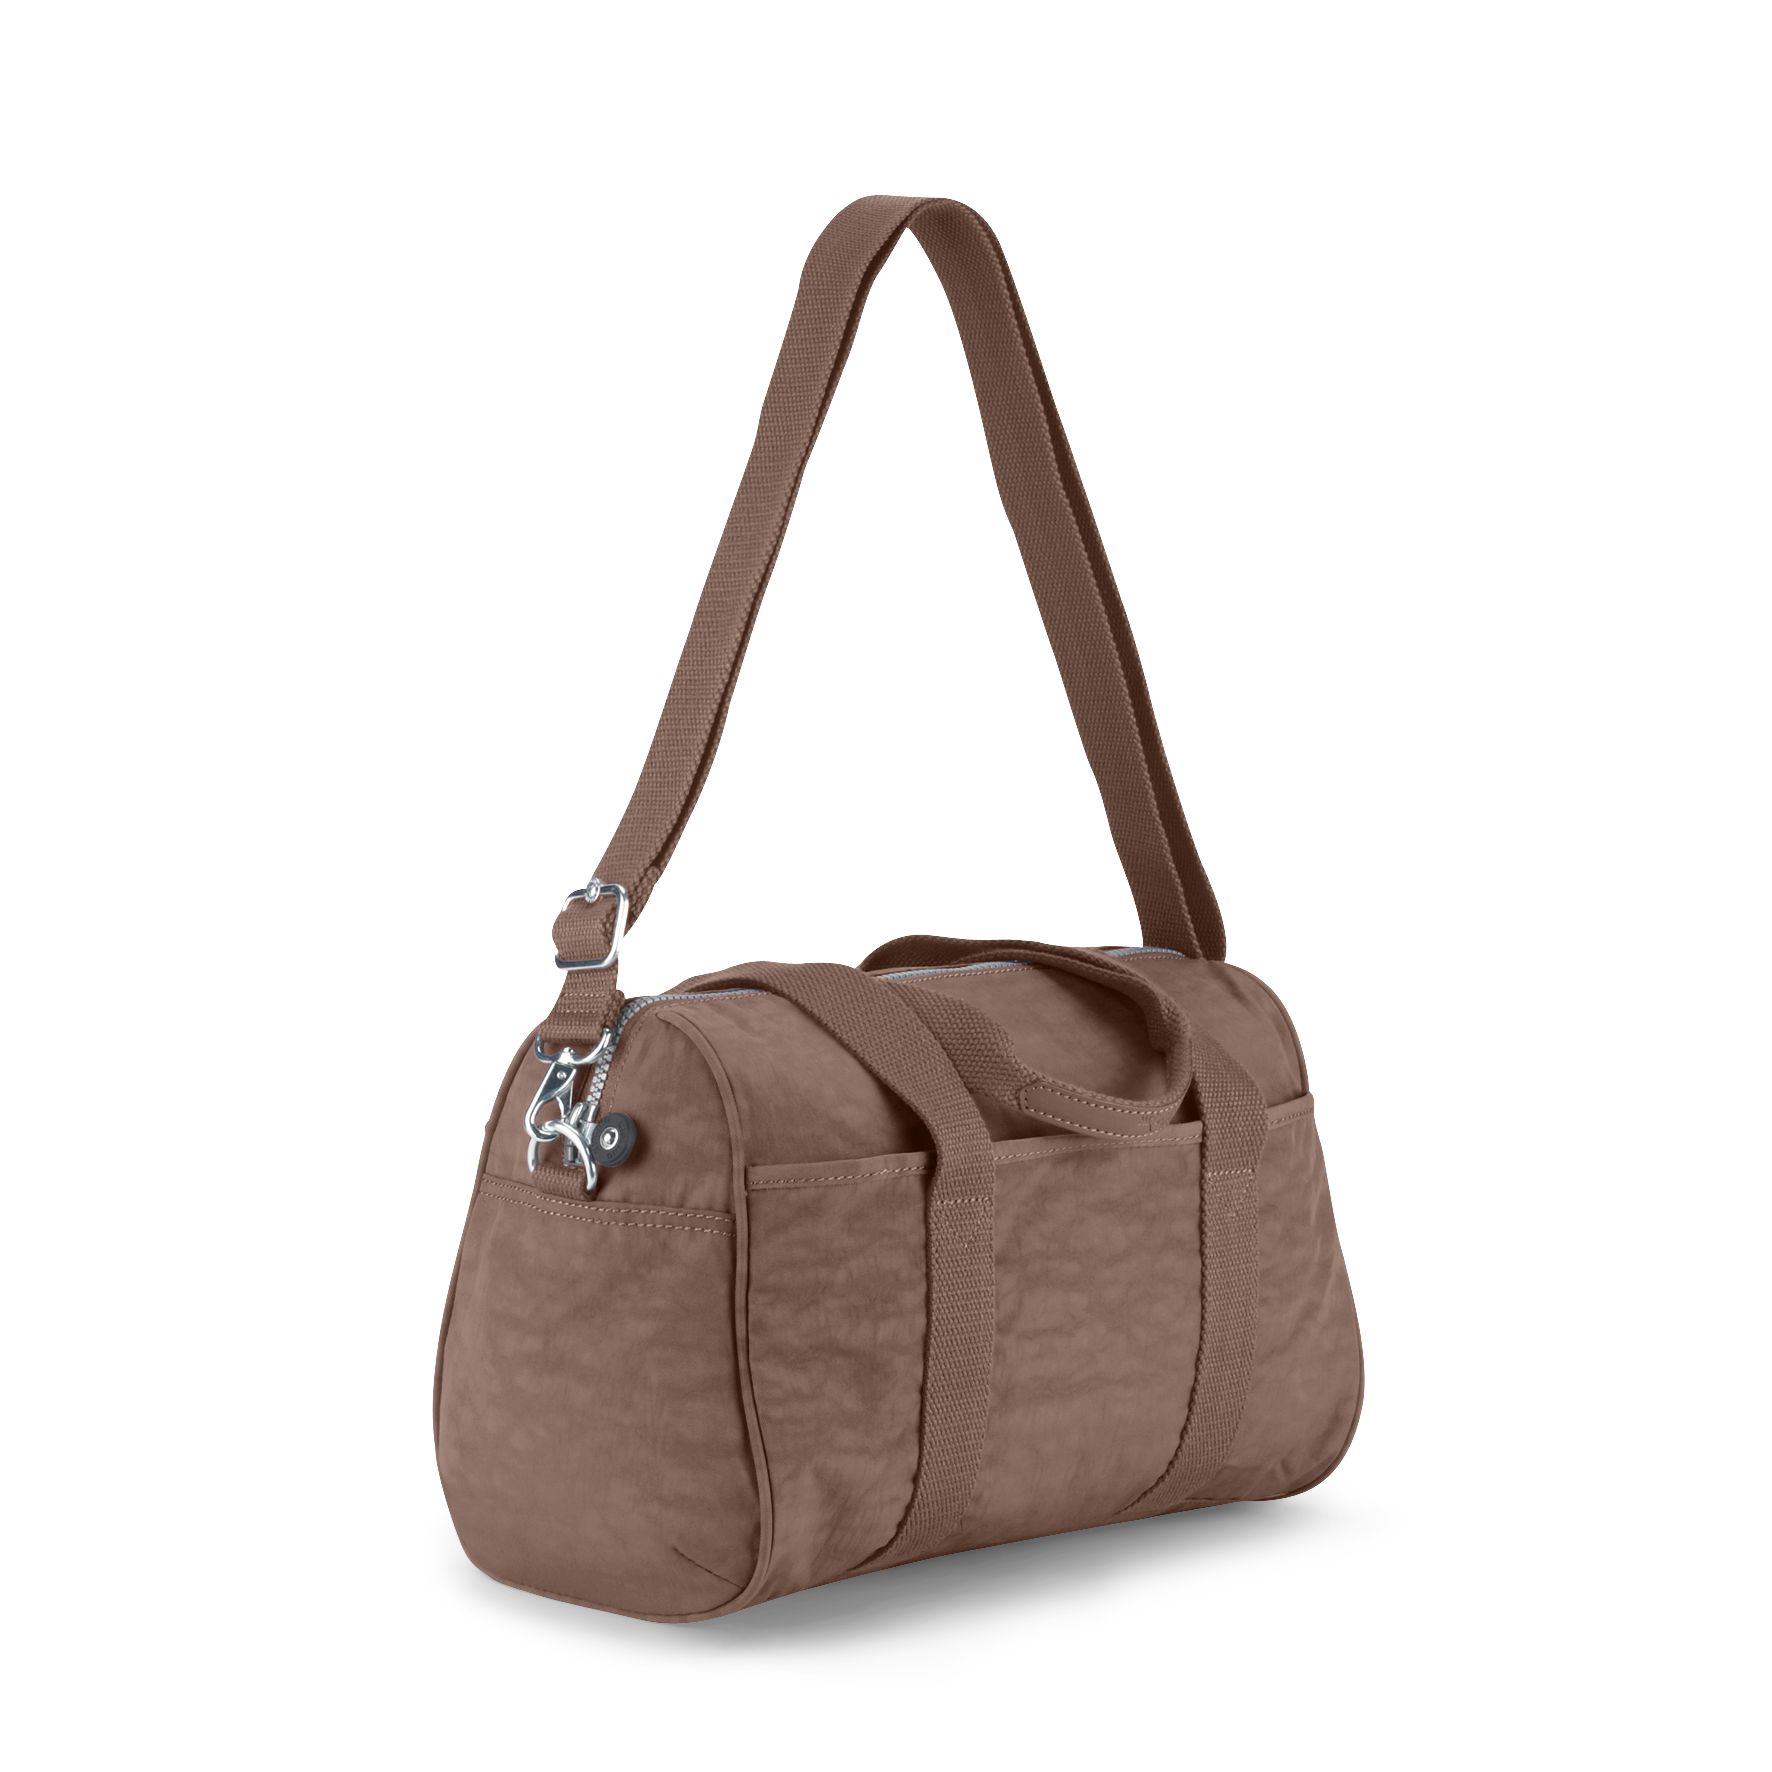 Practi cool shoulder bag